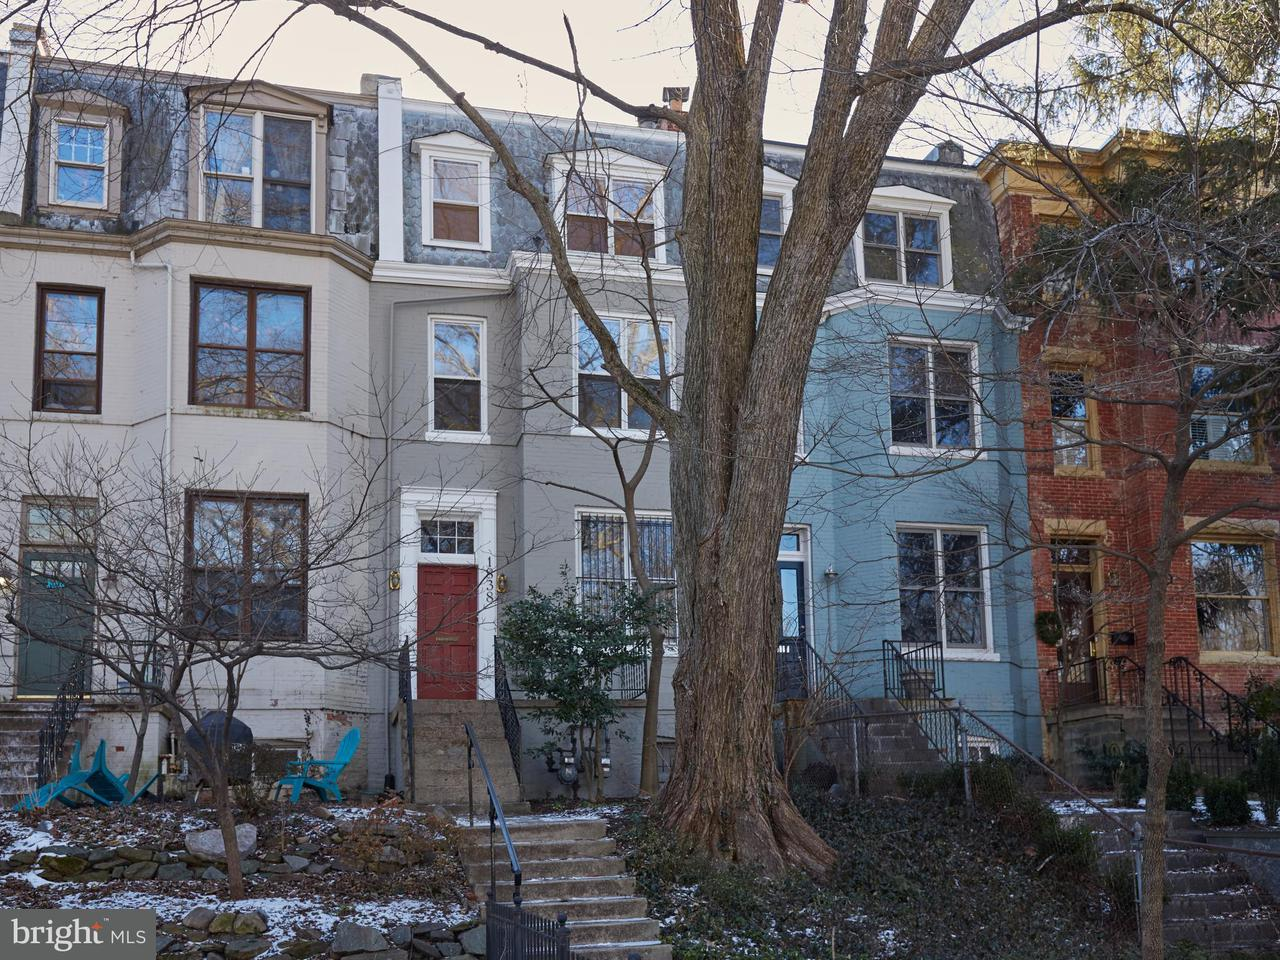 Multi-Family Home for Sale at 1838 INGLESIDE TER NW 1838 INGLESIDE TER NW Washington, District Of Columbia 20010 United States